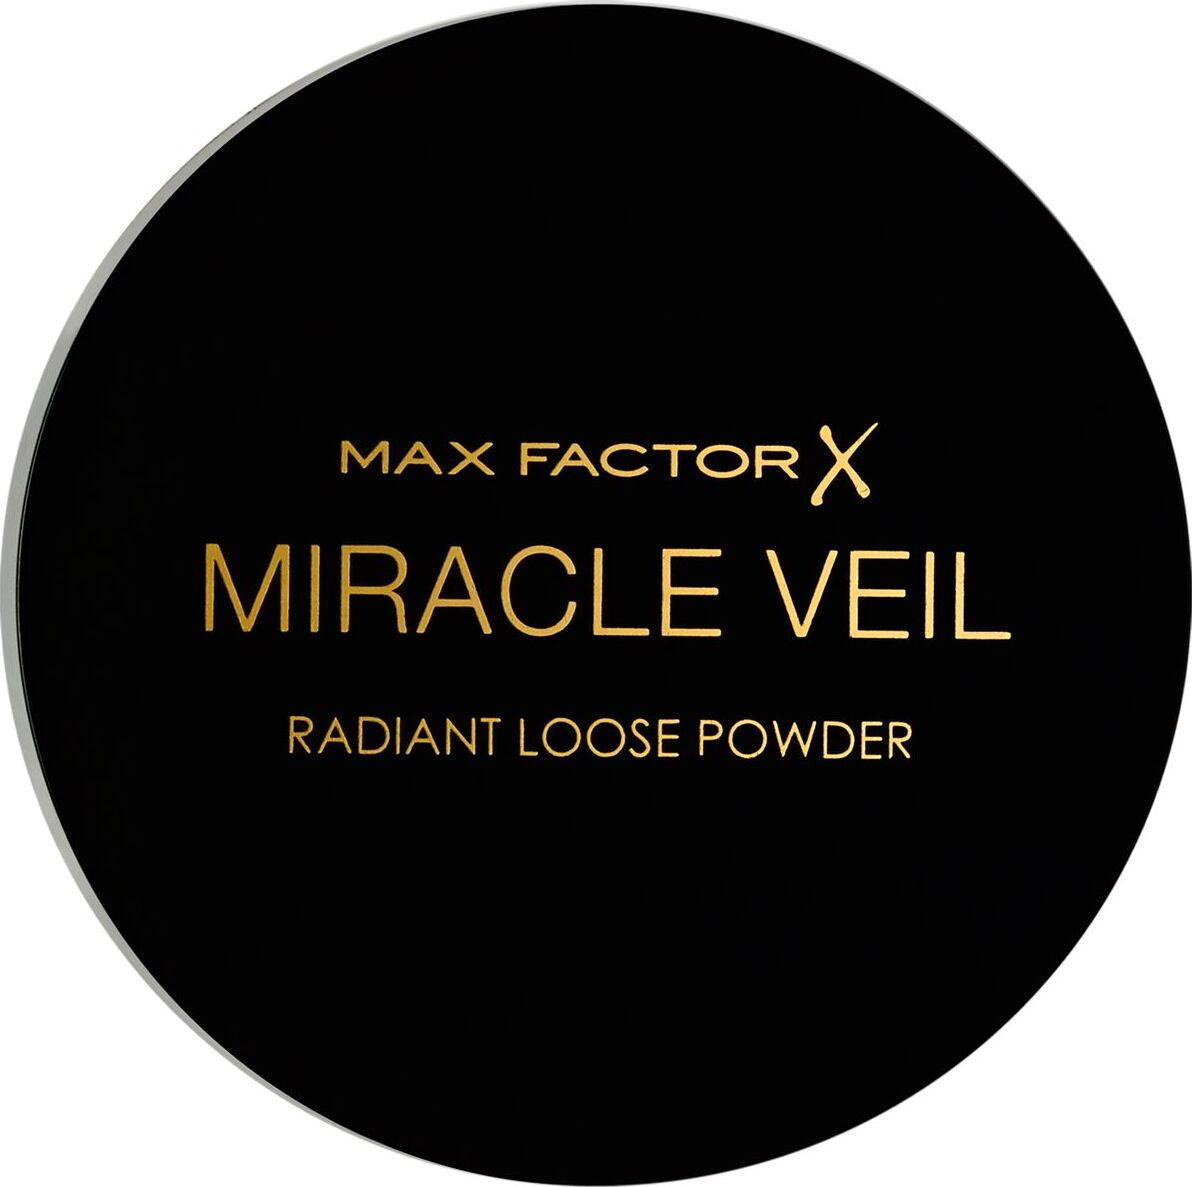 Пудра Max Factor Miracle Veil Radiant Loose Powder, 4 г